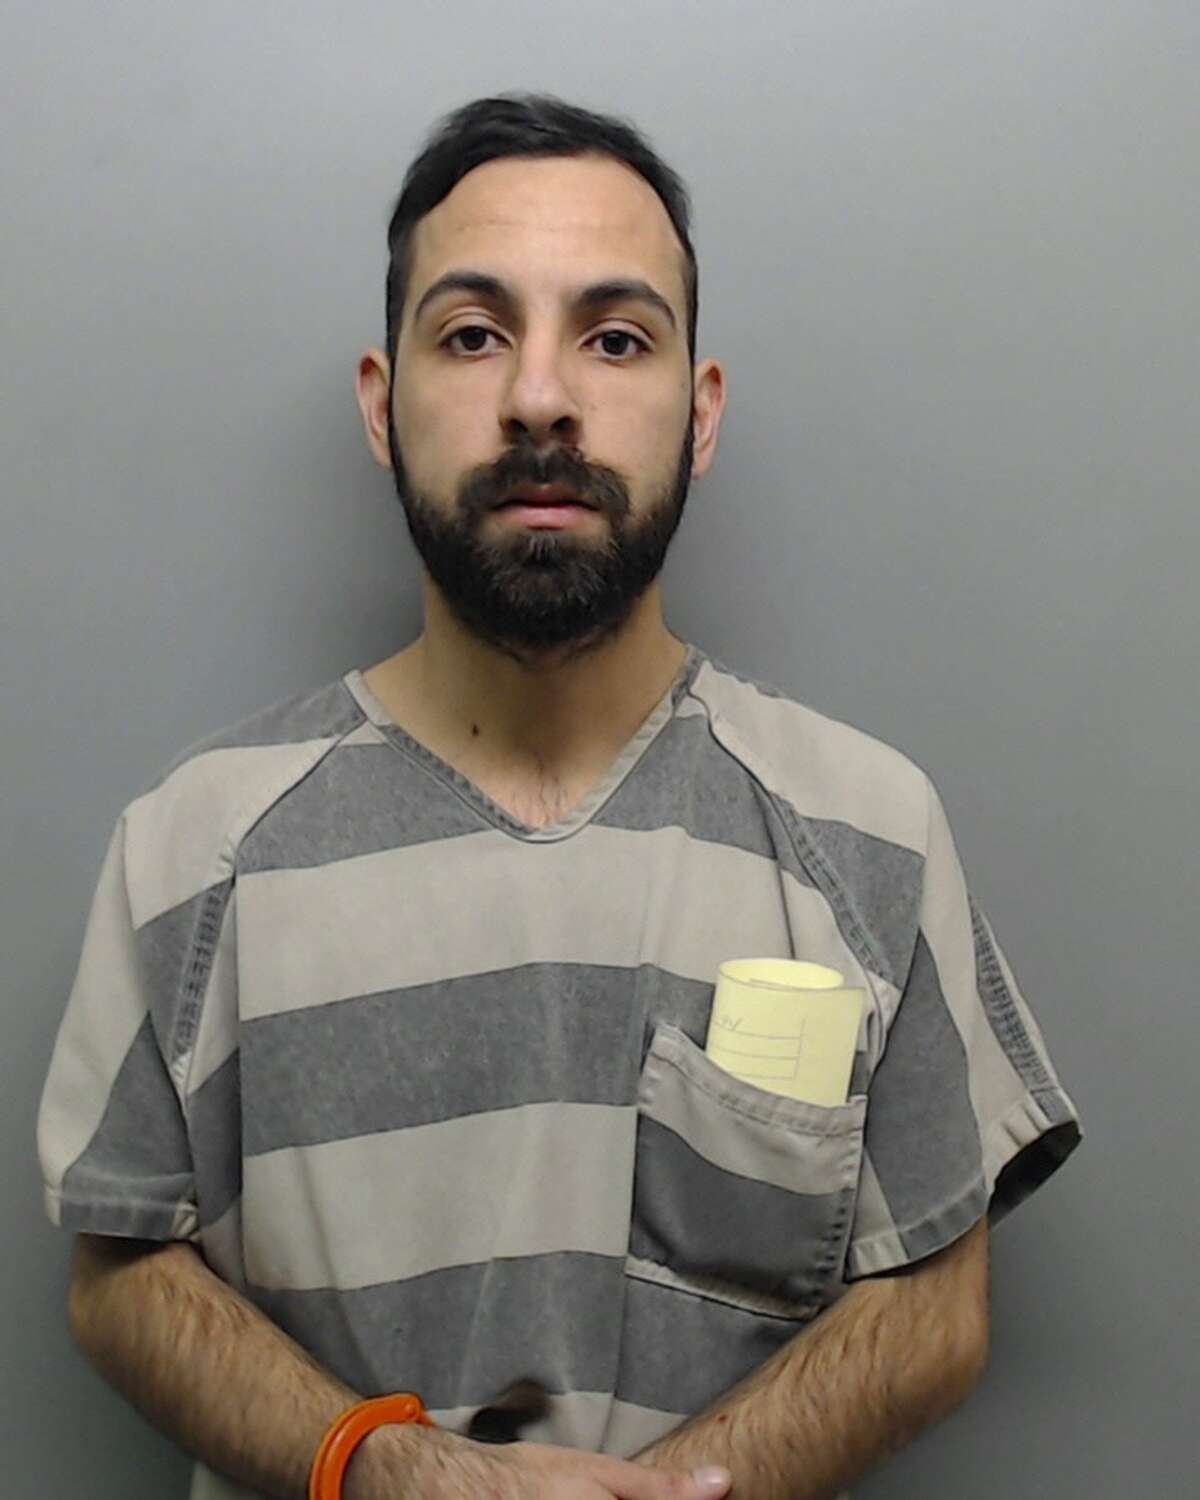 Felix Lopez, 23, was charged with racing on a highway.